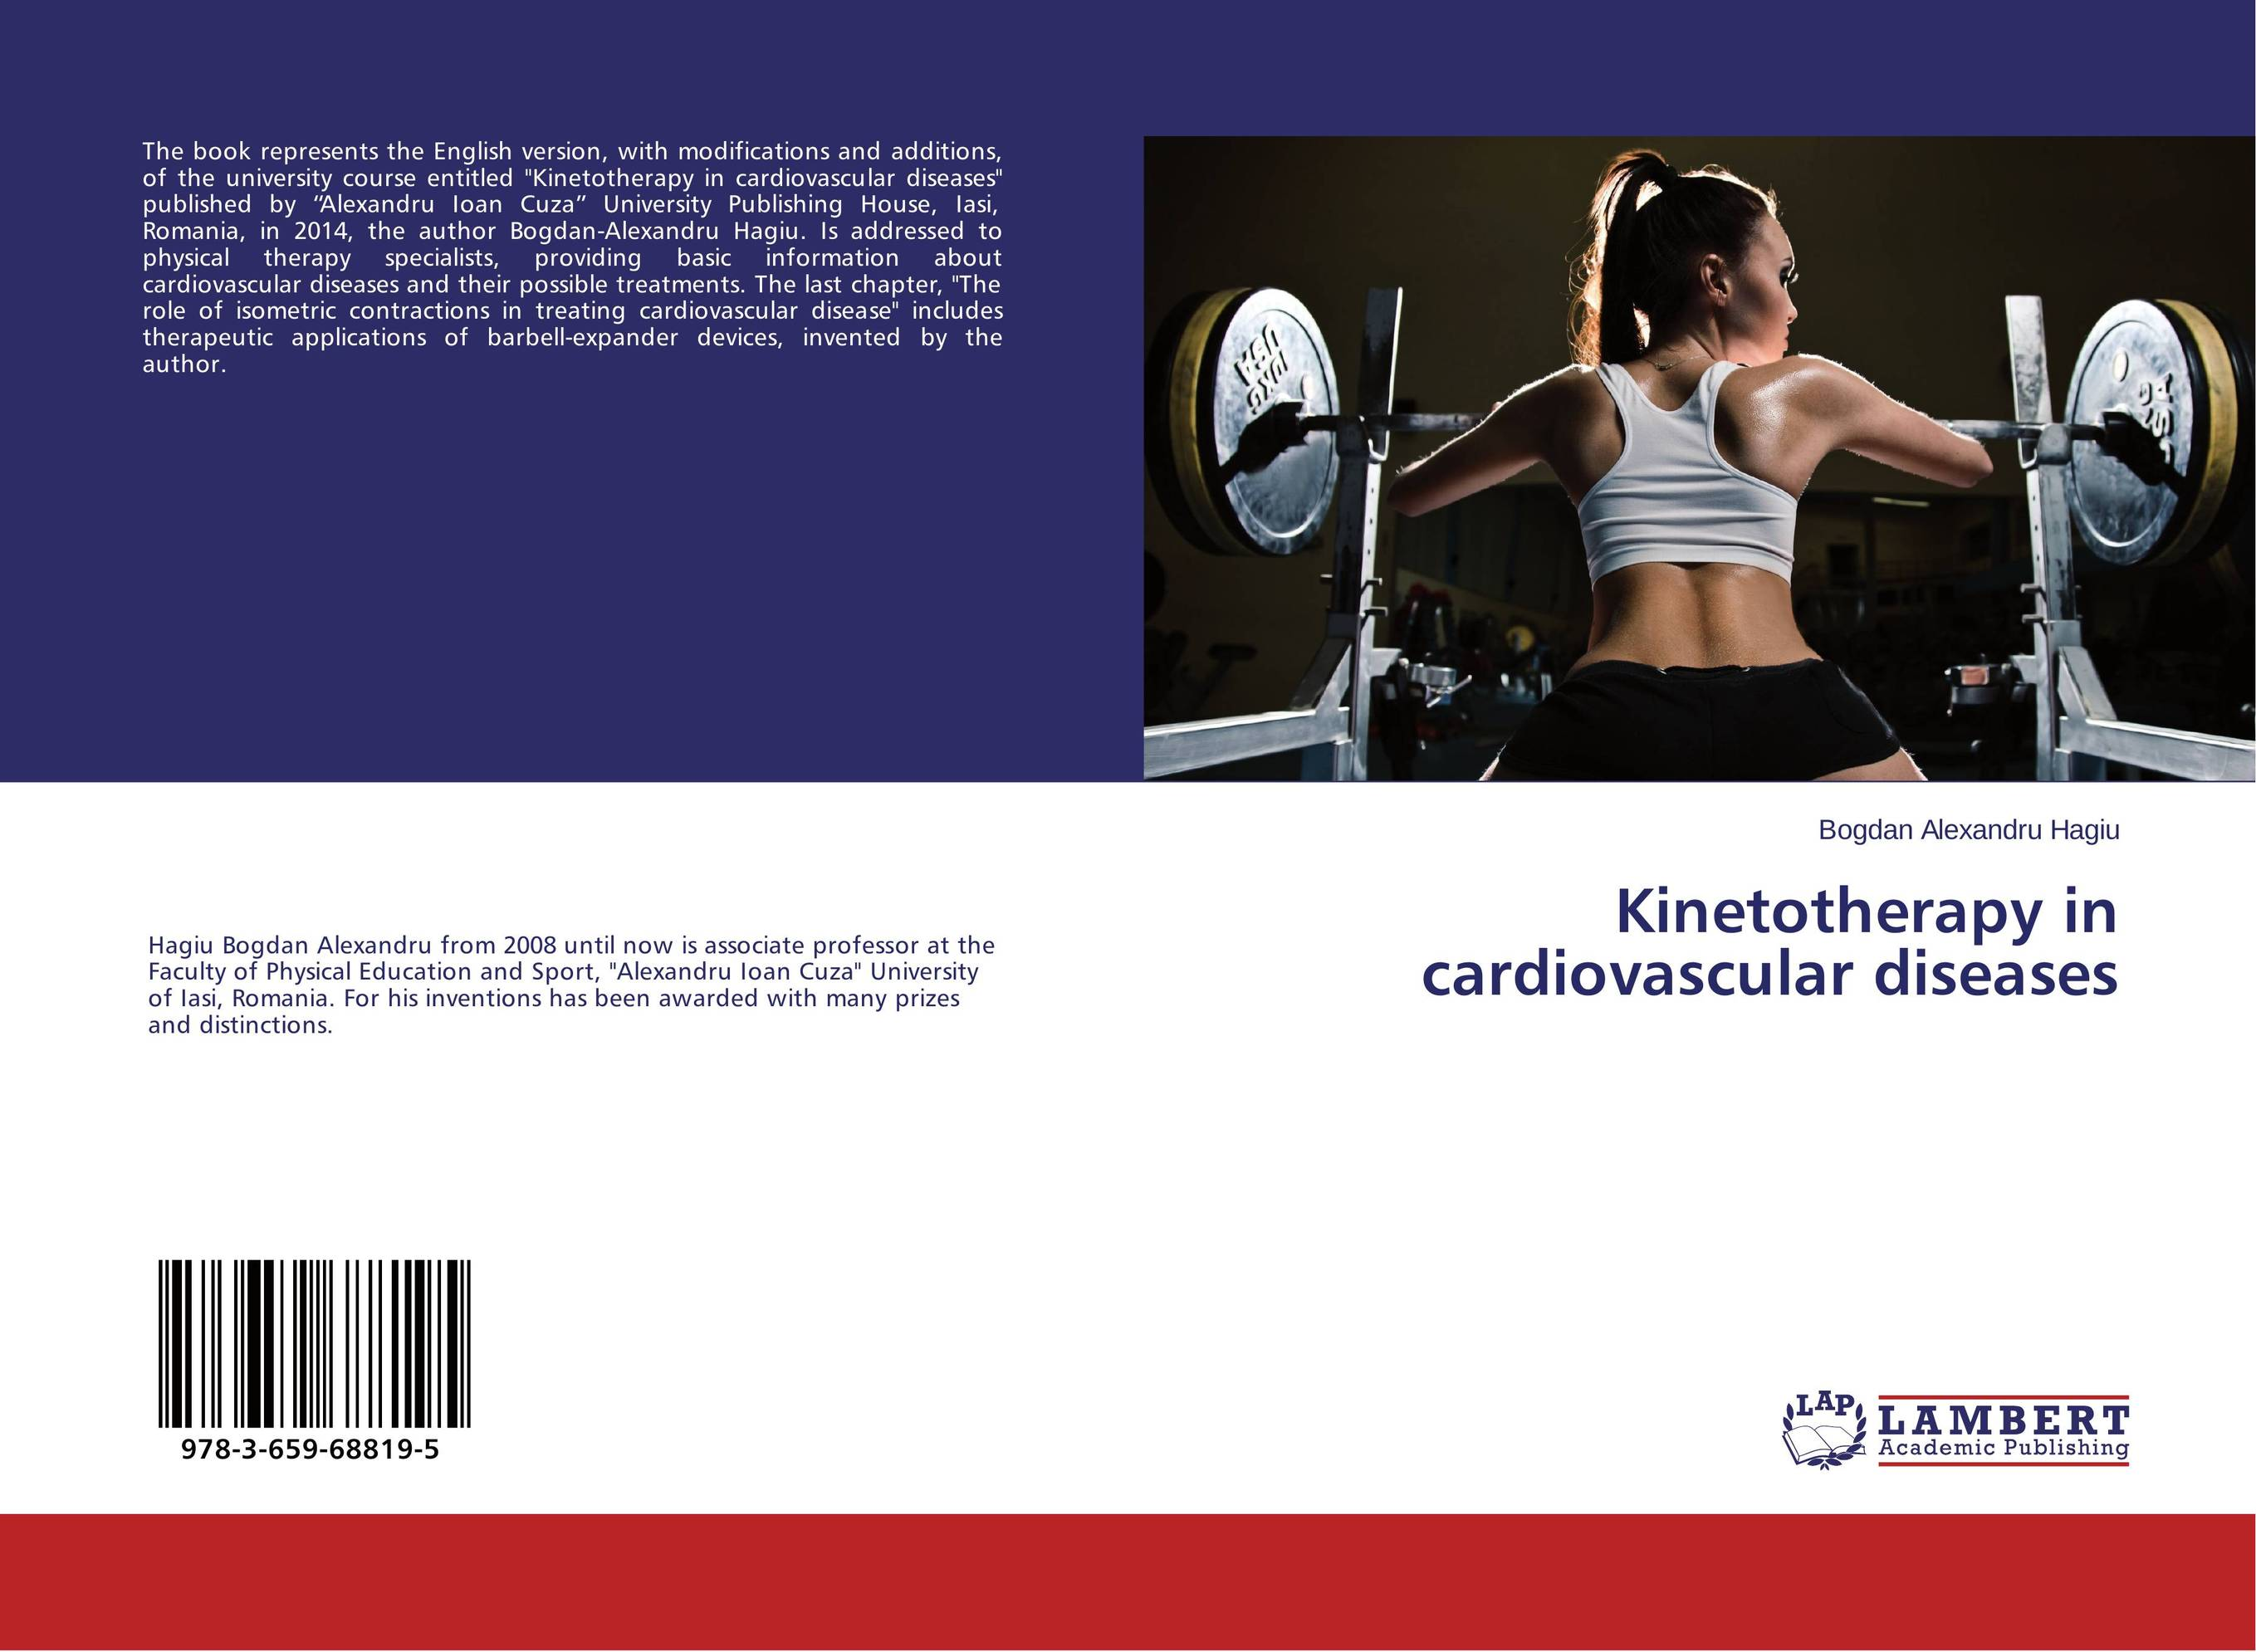 Kinetotherapy in cardiovascular diseases the autoimmune diseases